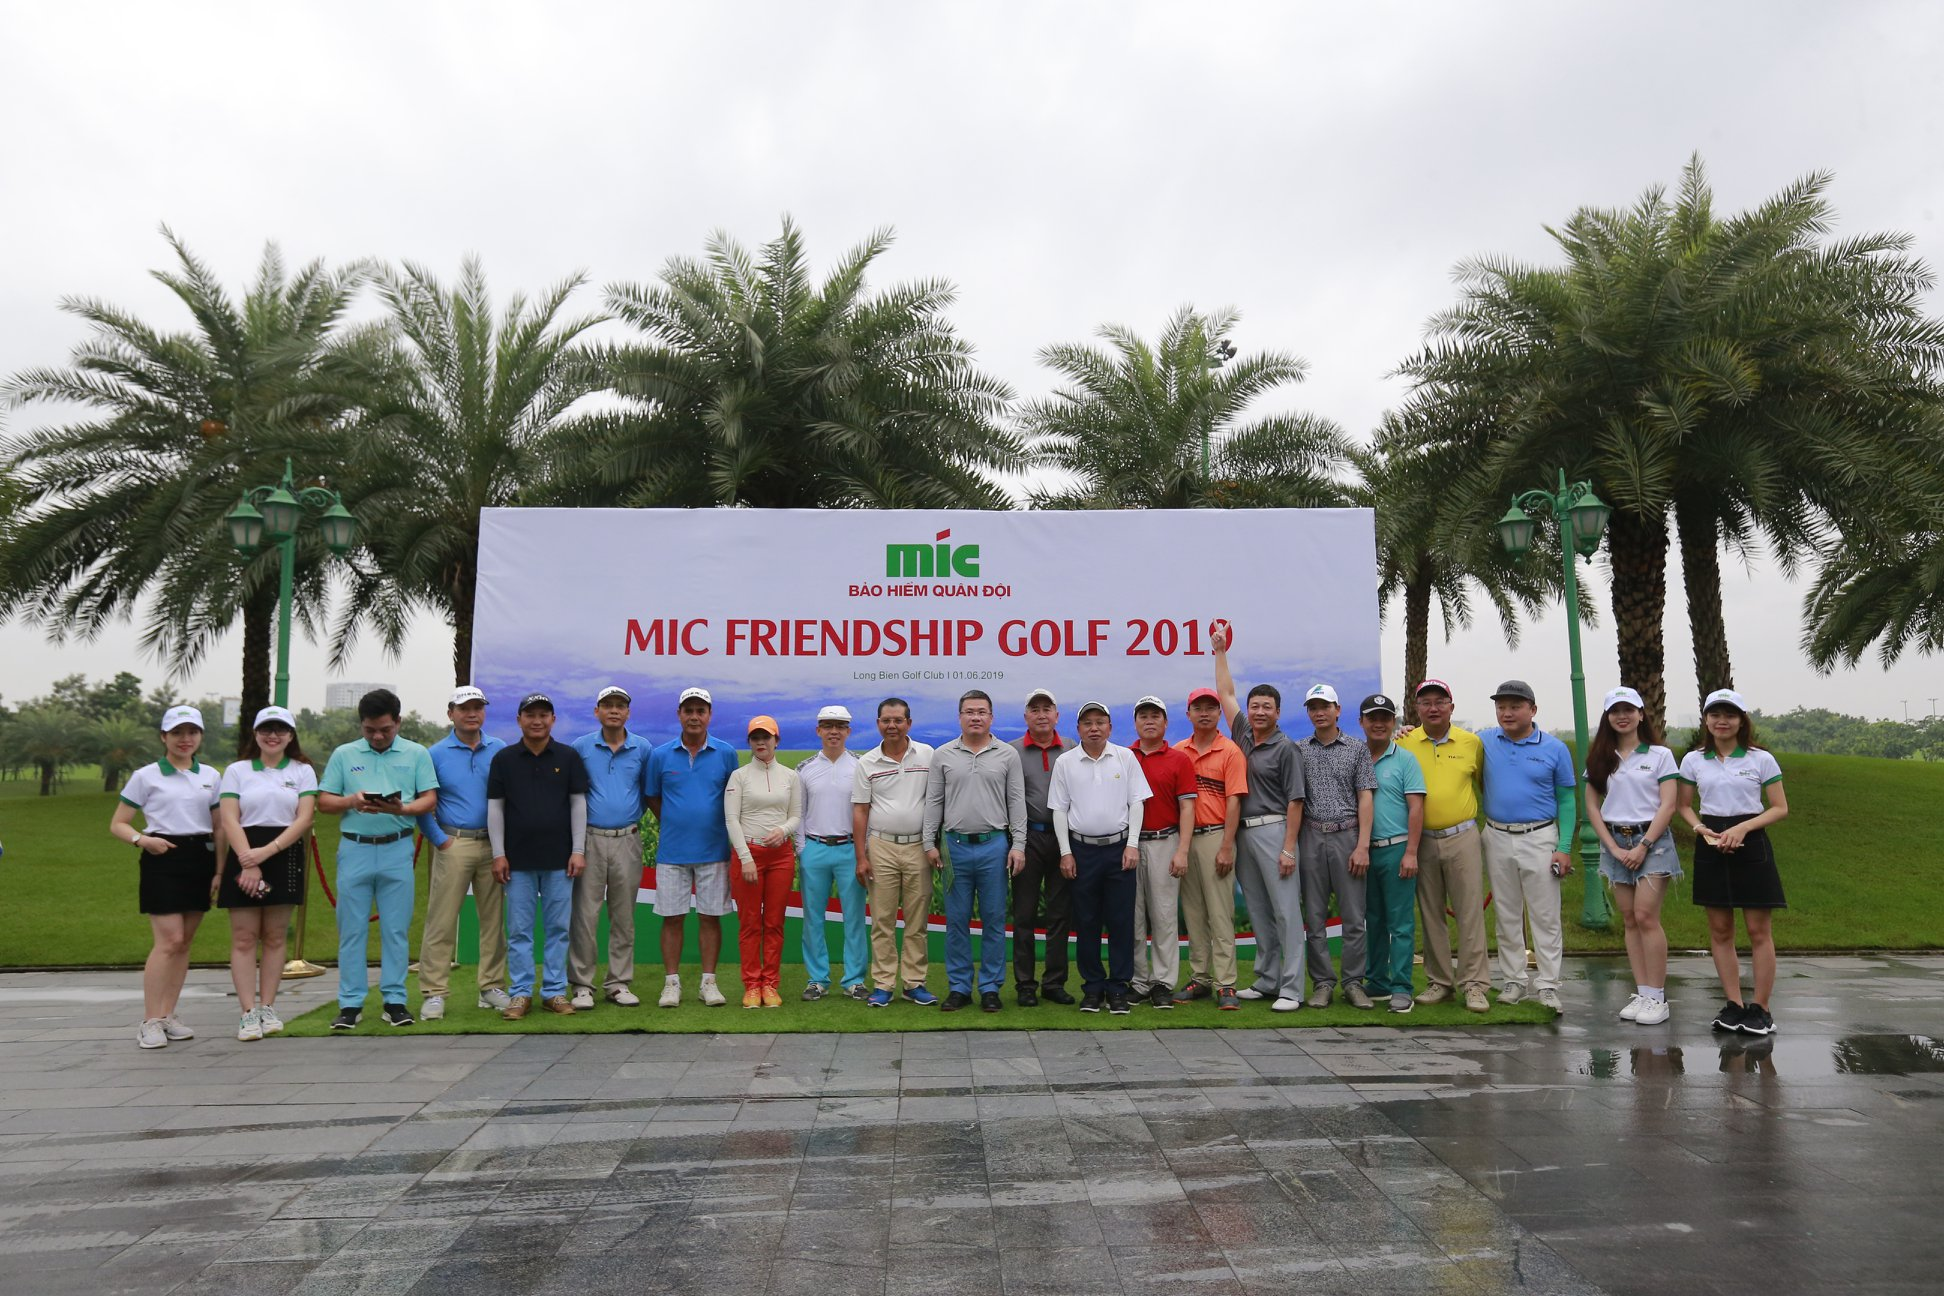 GIẢI GOLF MIC FRIENDSHIP 2019 - Sân golf Long Biên